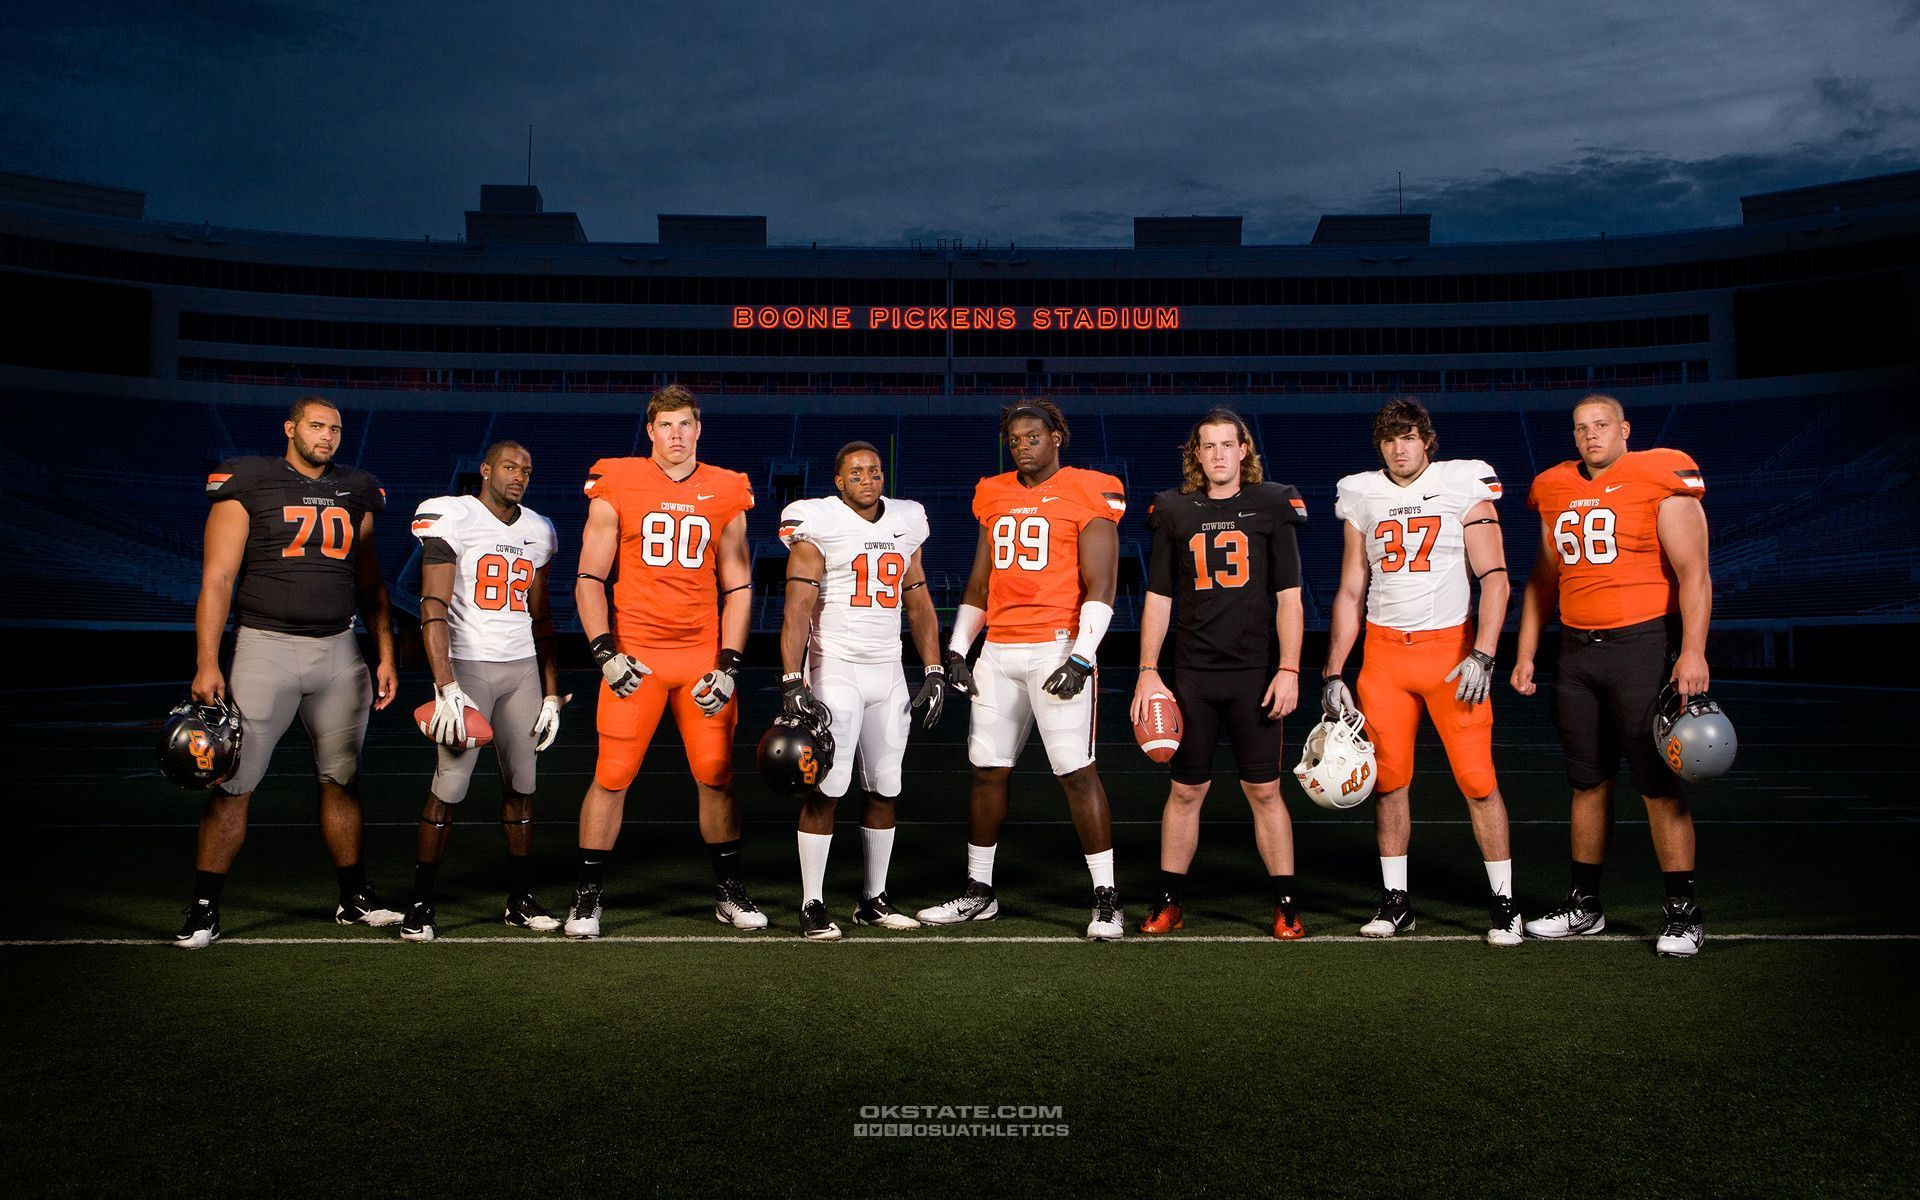 oklahoma state university backgrounds 33 wallpapers